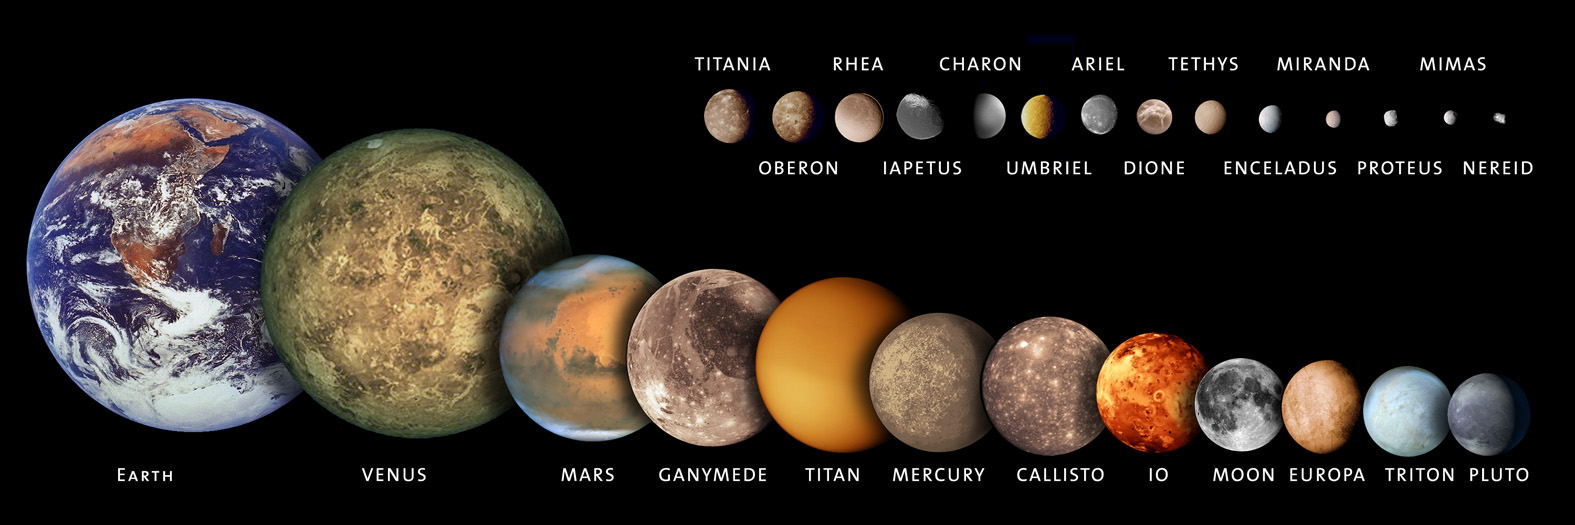 other moons on other planets - photo #31